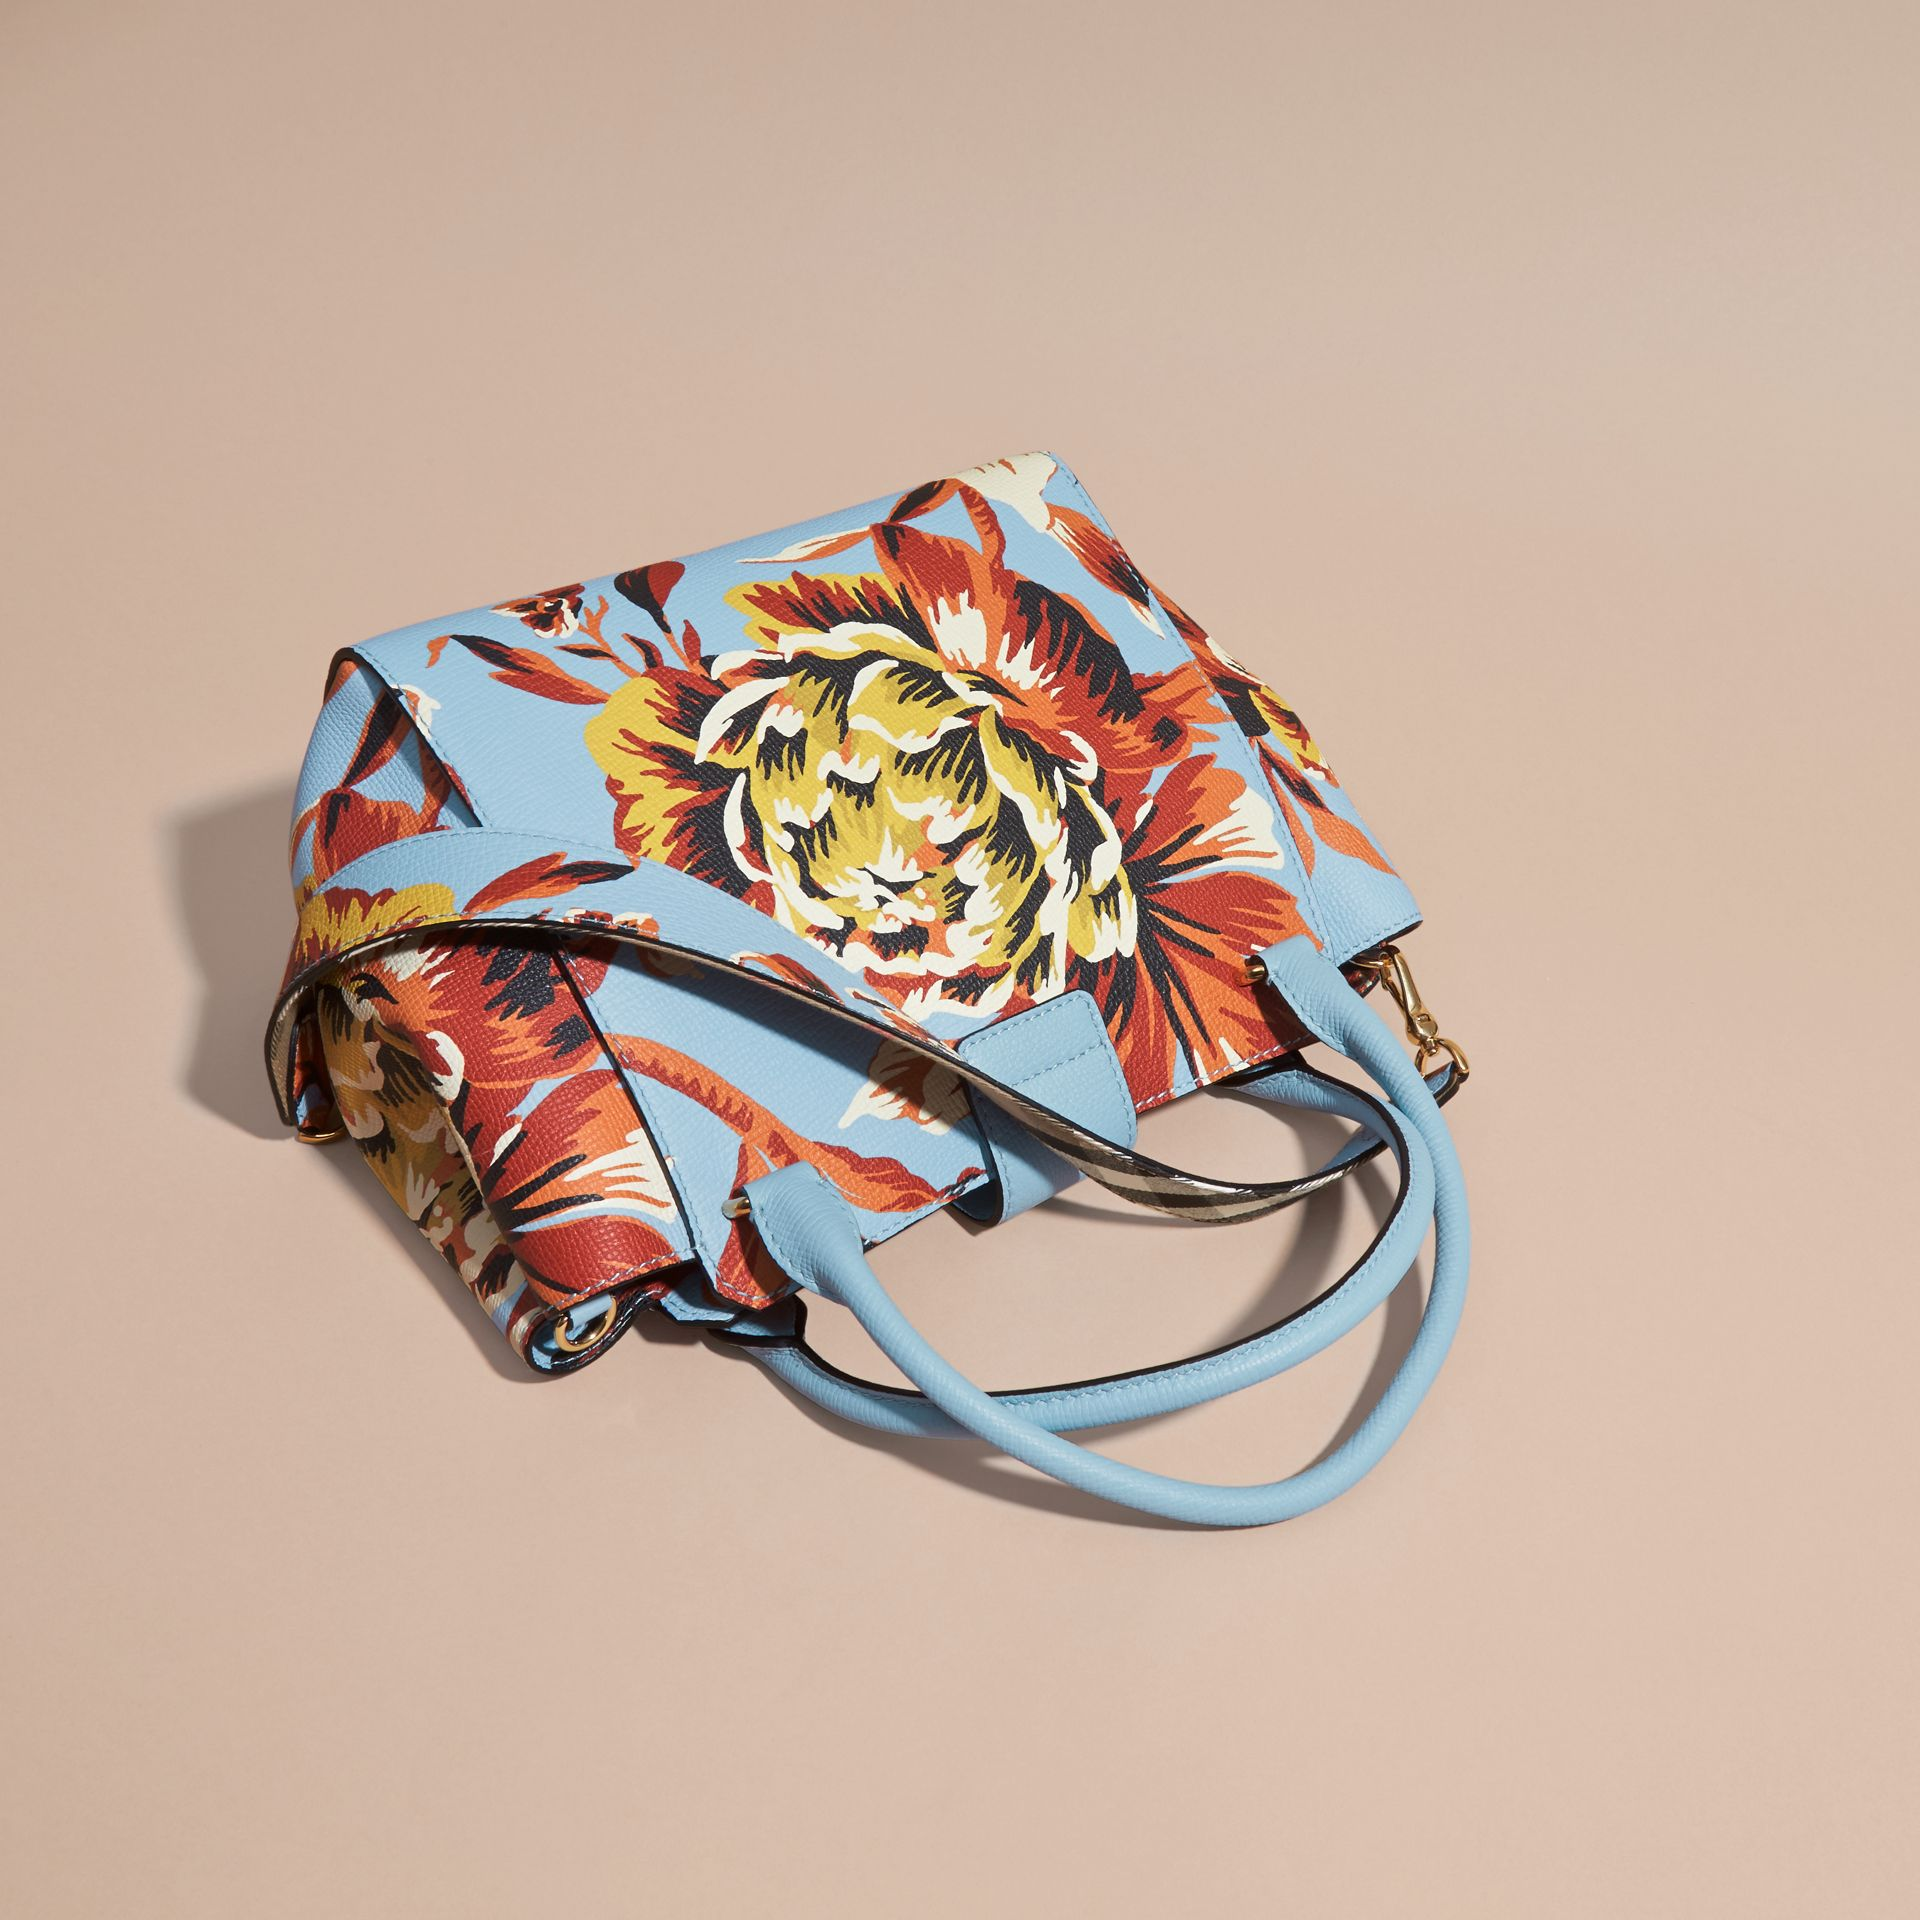 Pale blue/vibrant orange The Medium Buckle Tote in Peony Rose Print Leather Pale Blue/vibrant Orange - gallery image 5